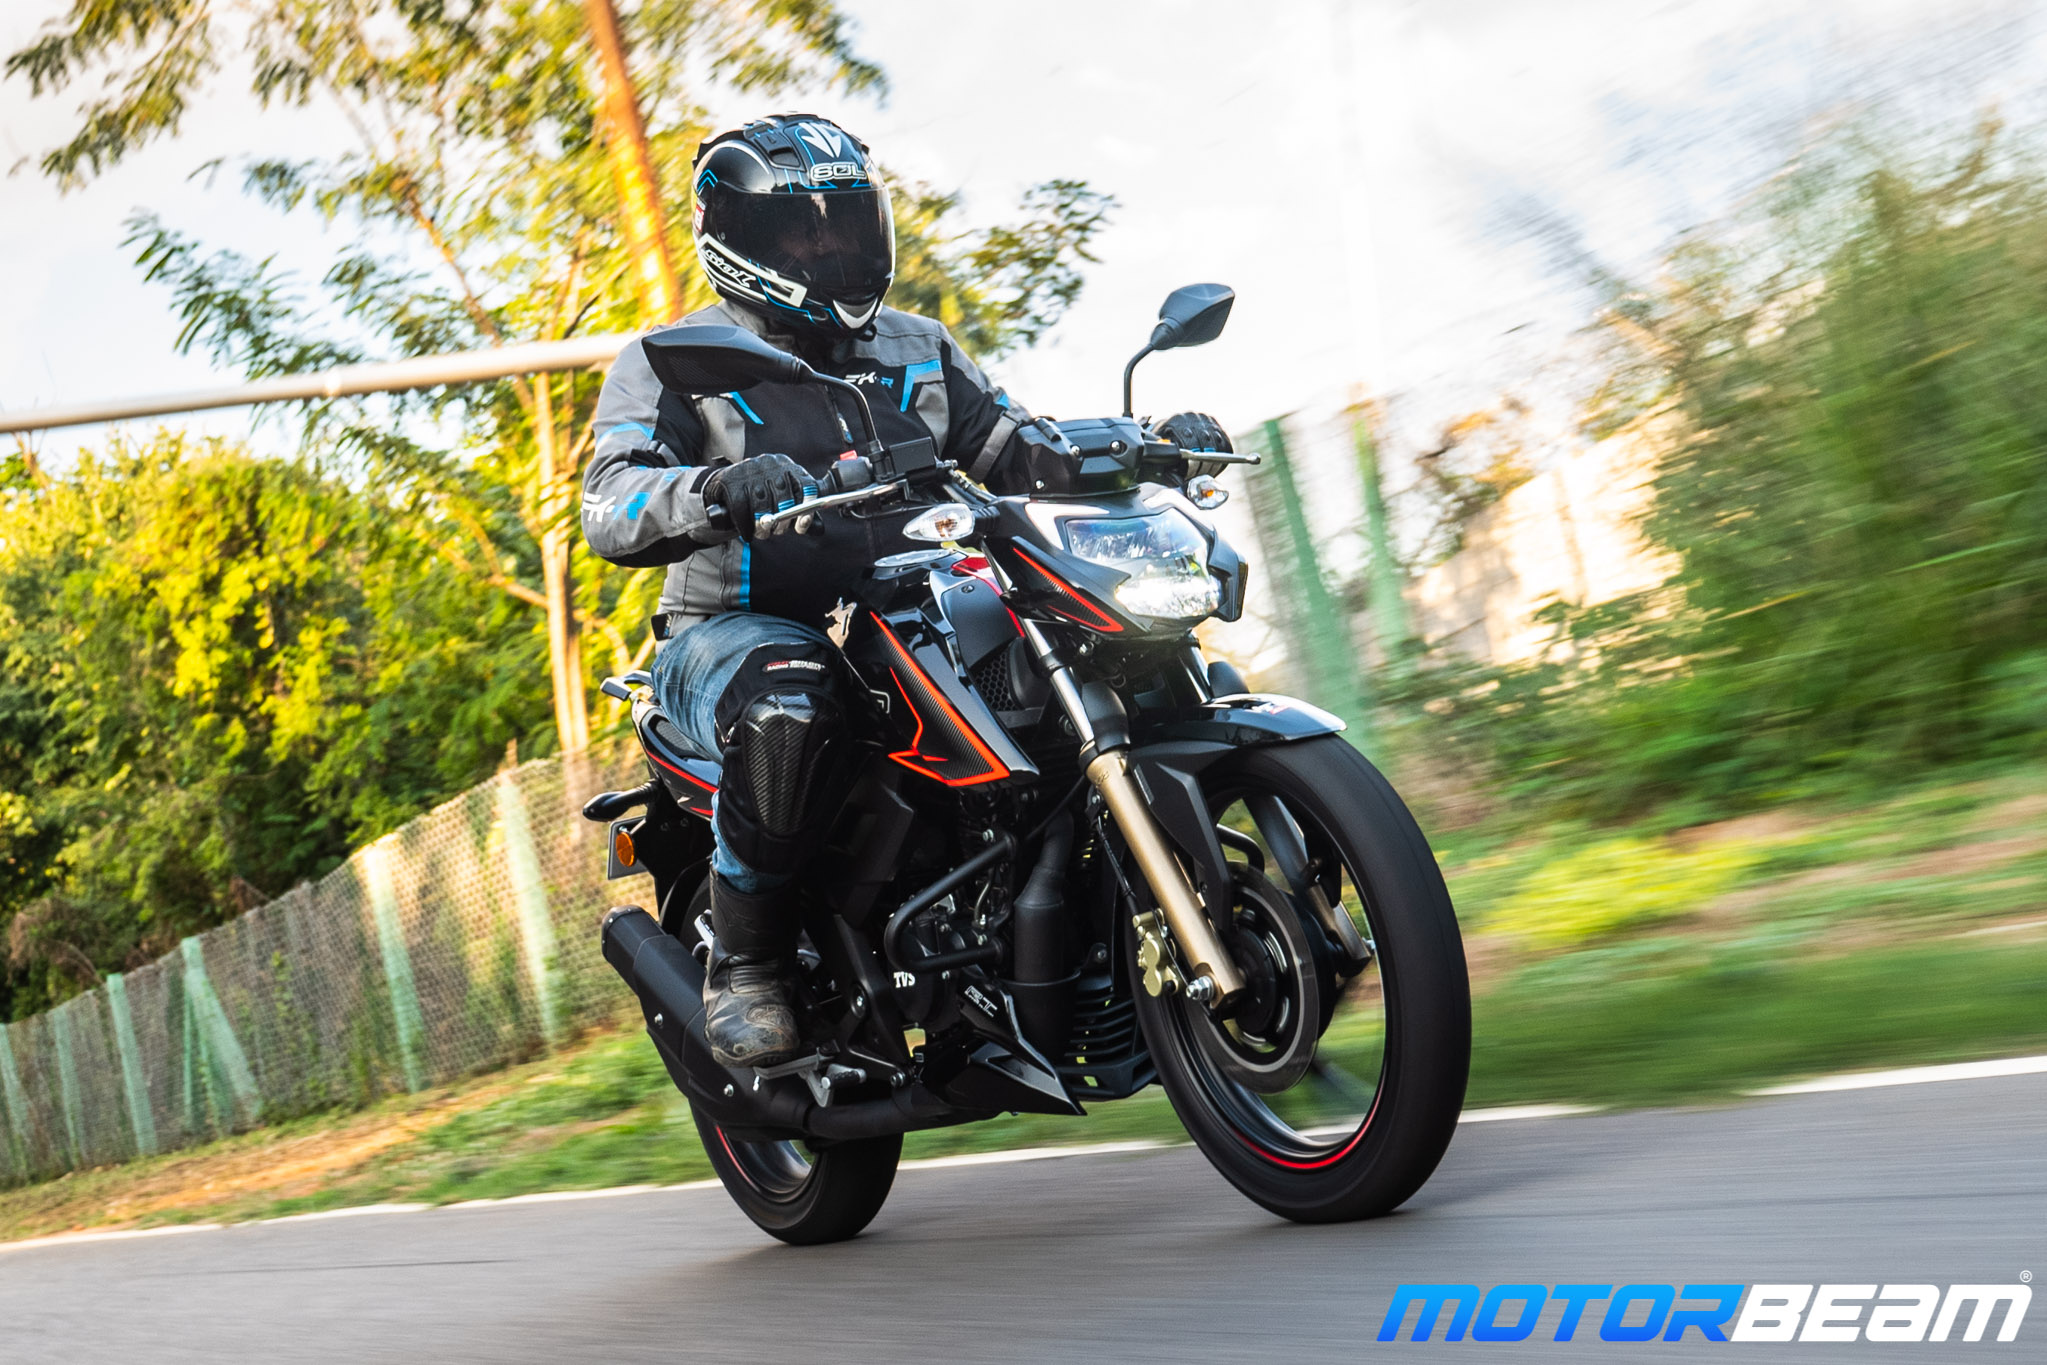 2020 TVS Apache 200 Review Riding Comfort